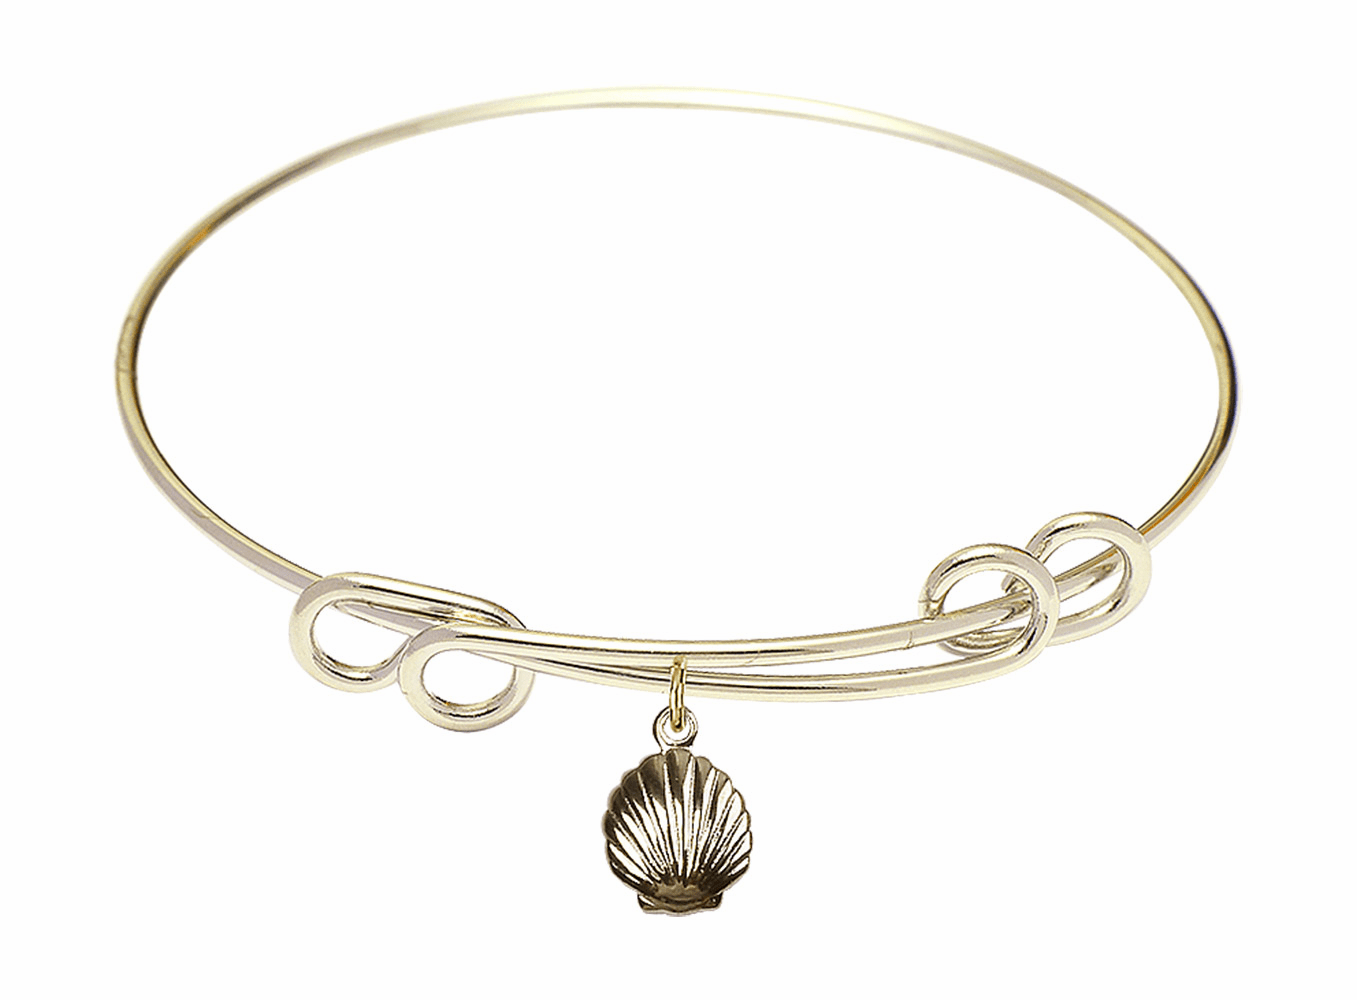 Round Double Loop Bangle Bracelet w/Baptism Shell Charm by Bliss Mfg